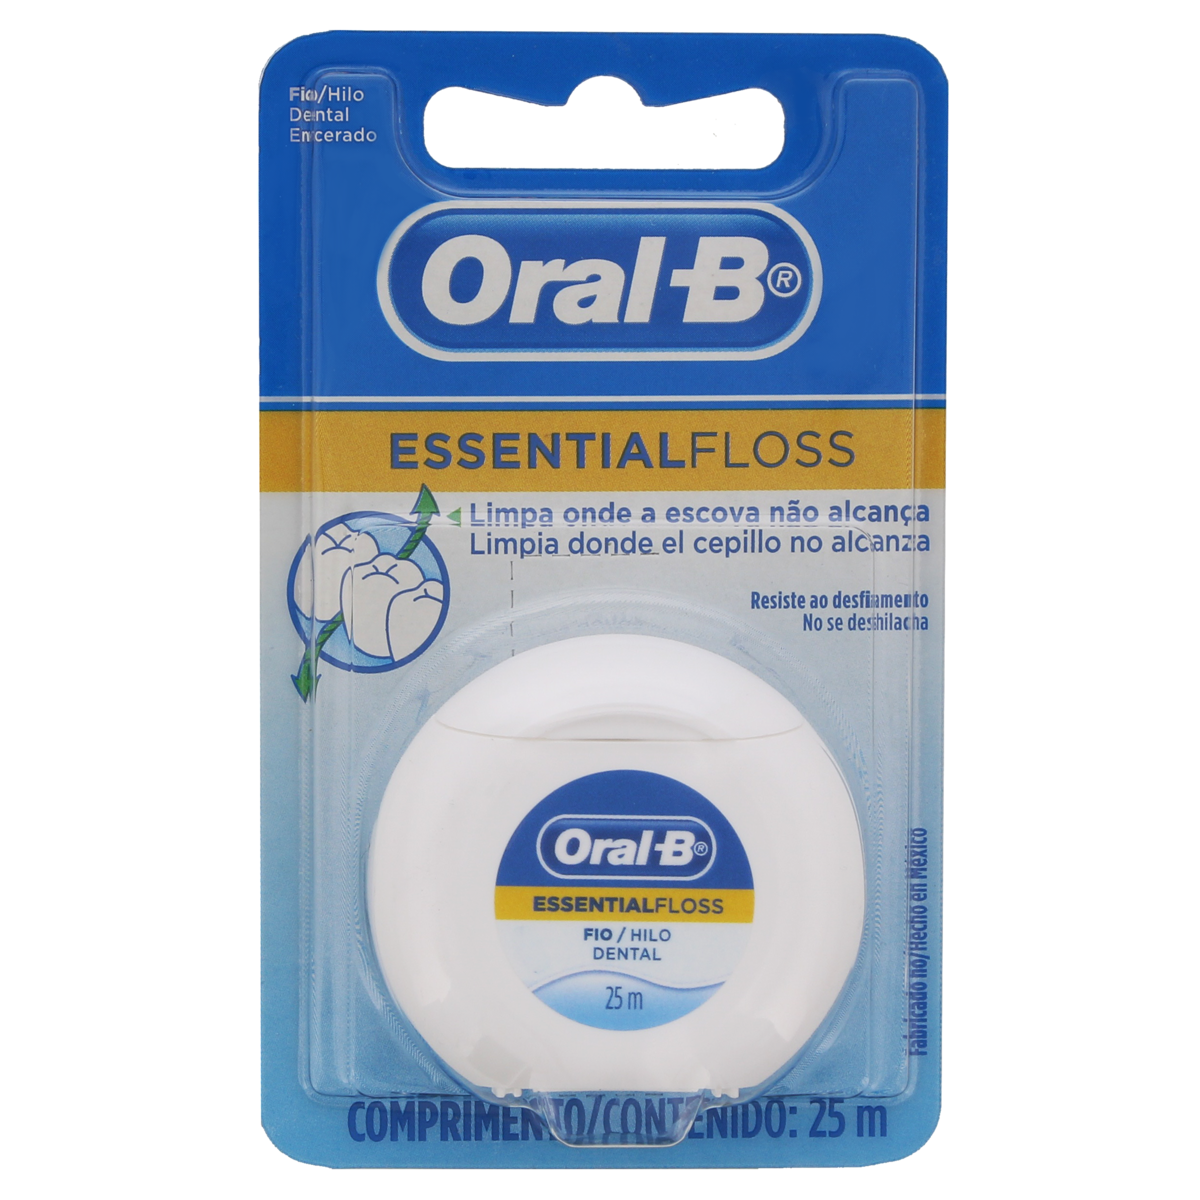 7800005081027 - FIO DENTAL ESSENTIALFLOSS ORAL-B 25M